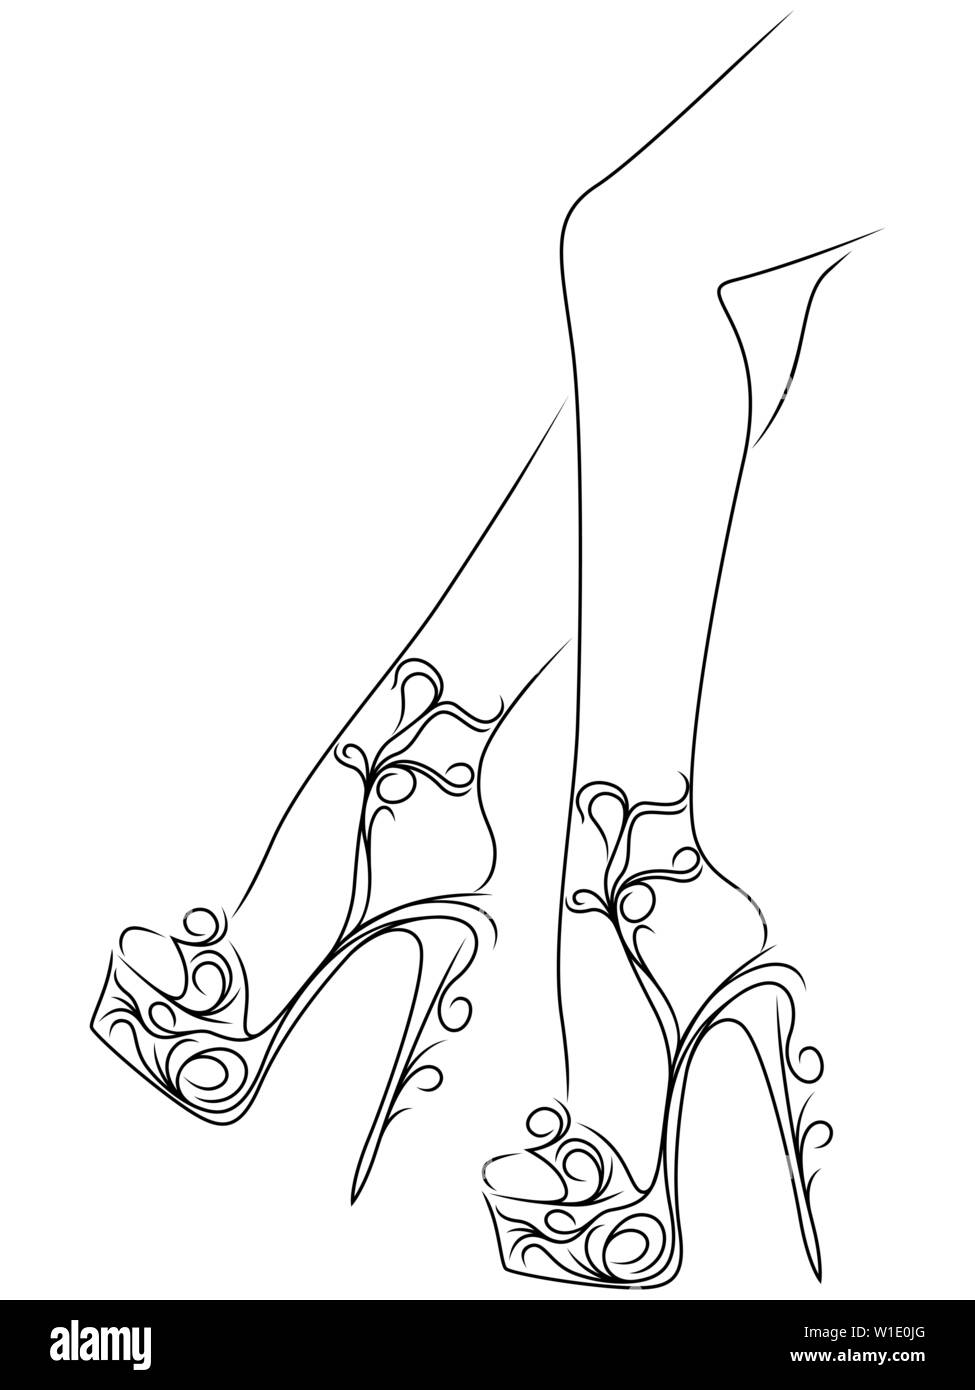 Sketching Outline Of Graceful Female Feet In Abstract Floral